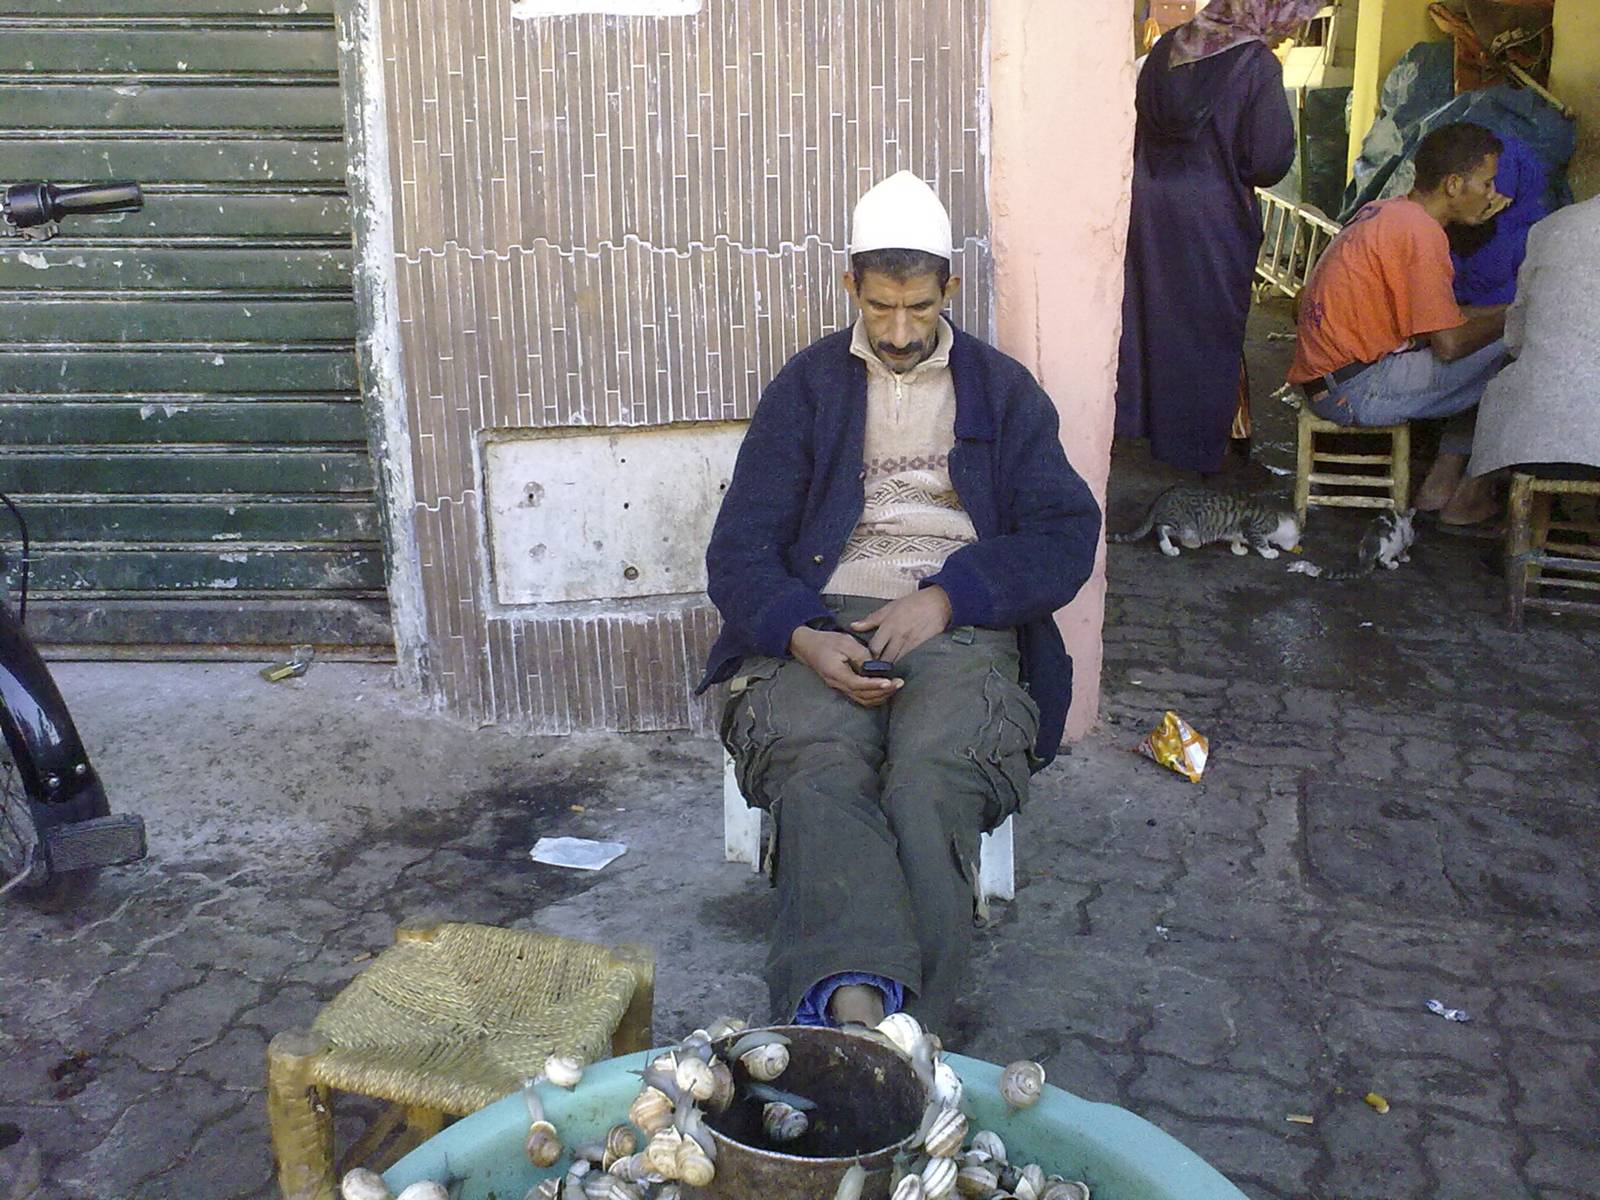 Marrakech-marrakesh-venditore-ambulante-street-peddler